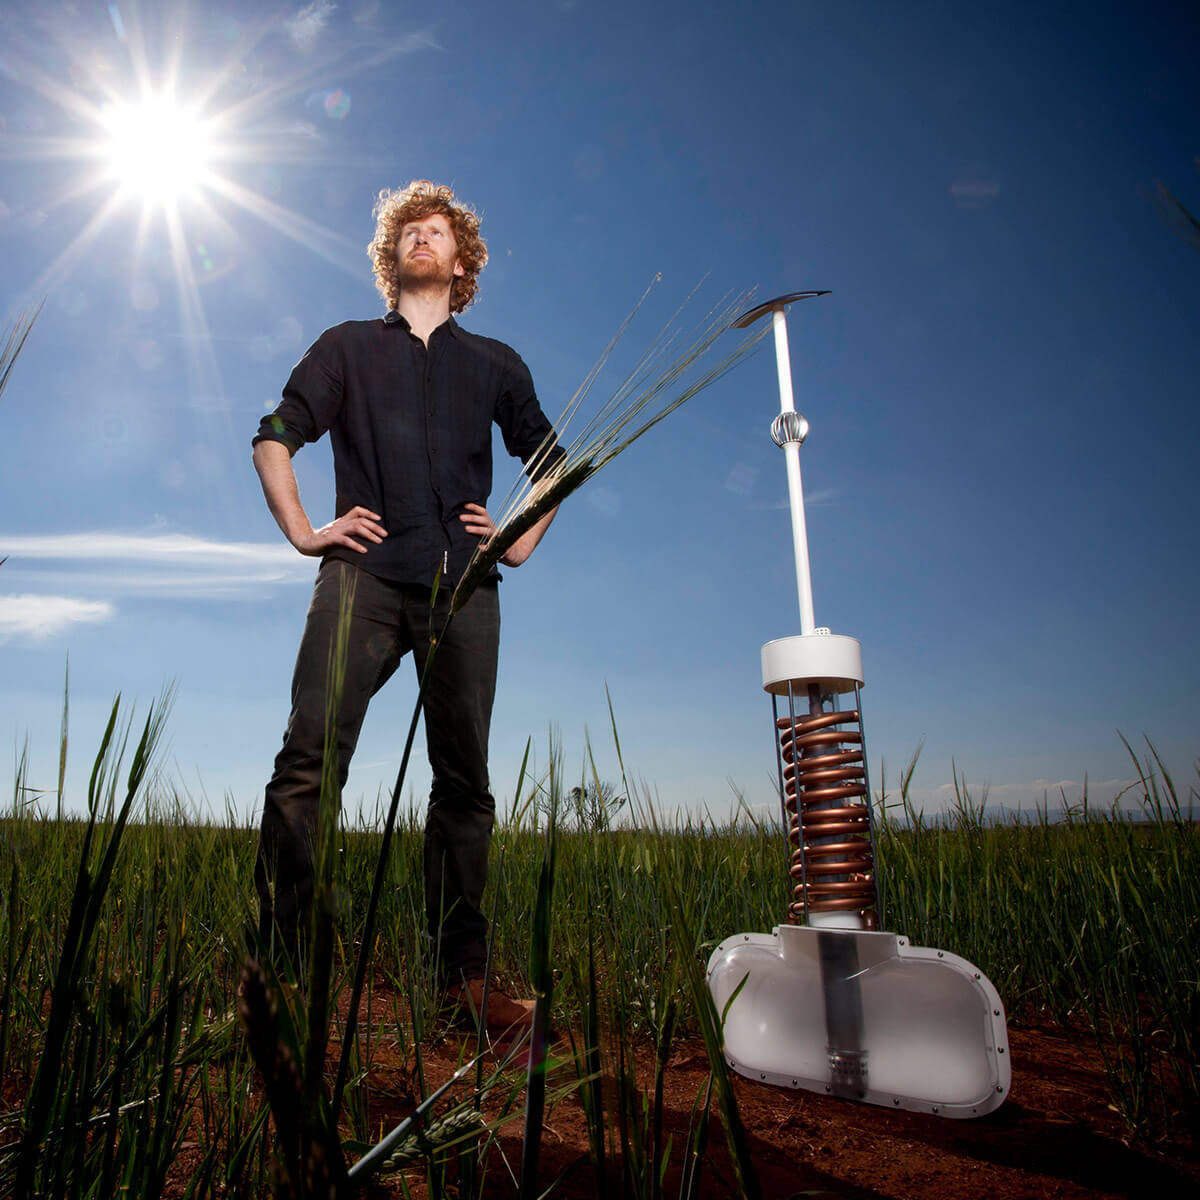 2011 international winner of the James Dyson Award, Edward Linacre, with his invention Airdrop